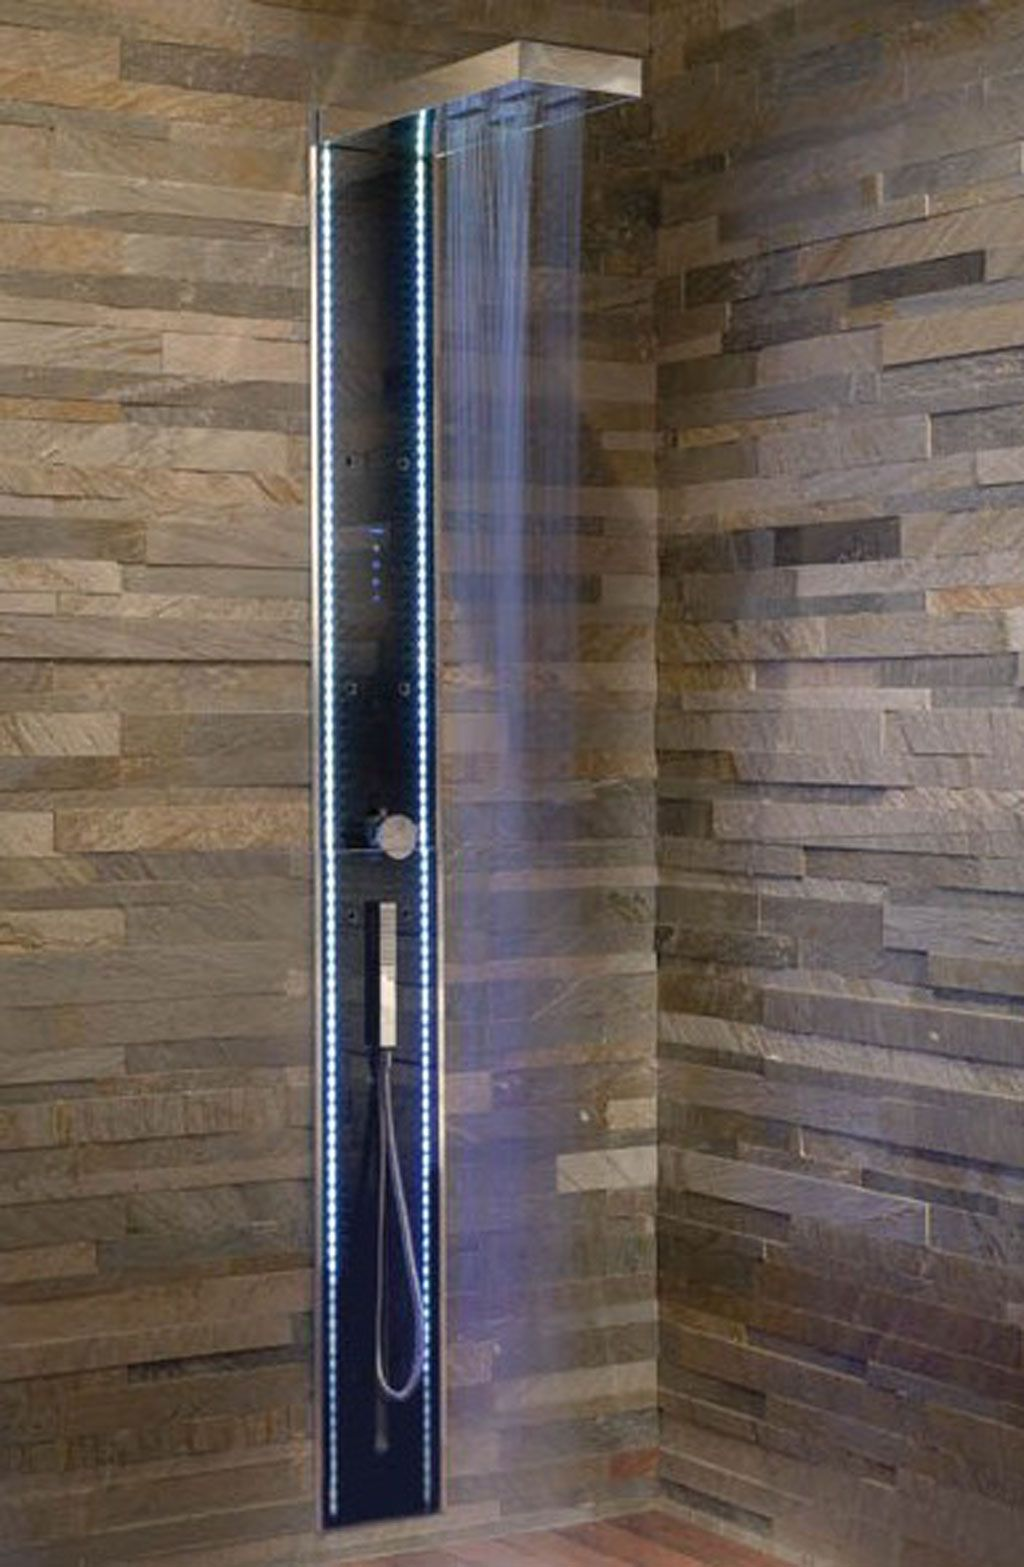 25 the art of bathroom tile designs with example images for Design positive tile